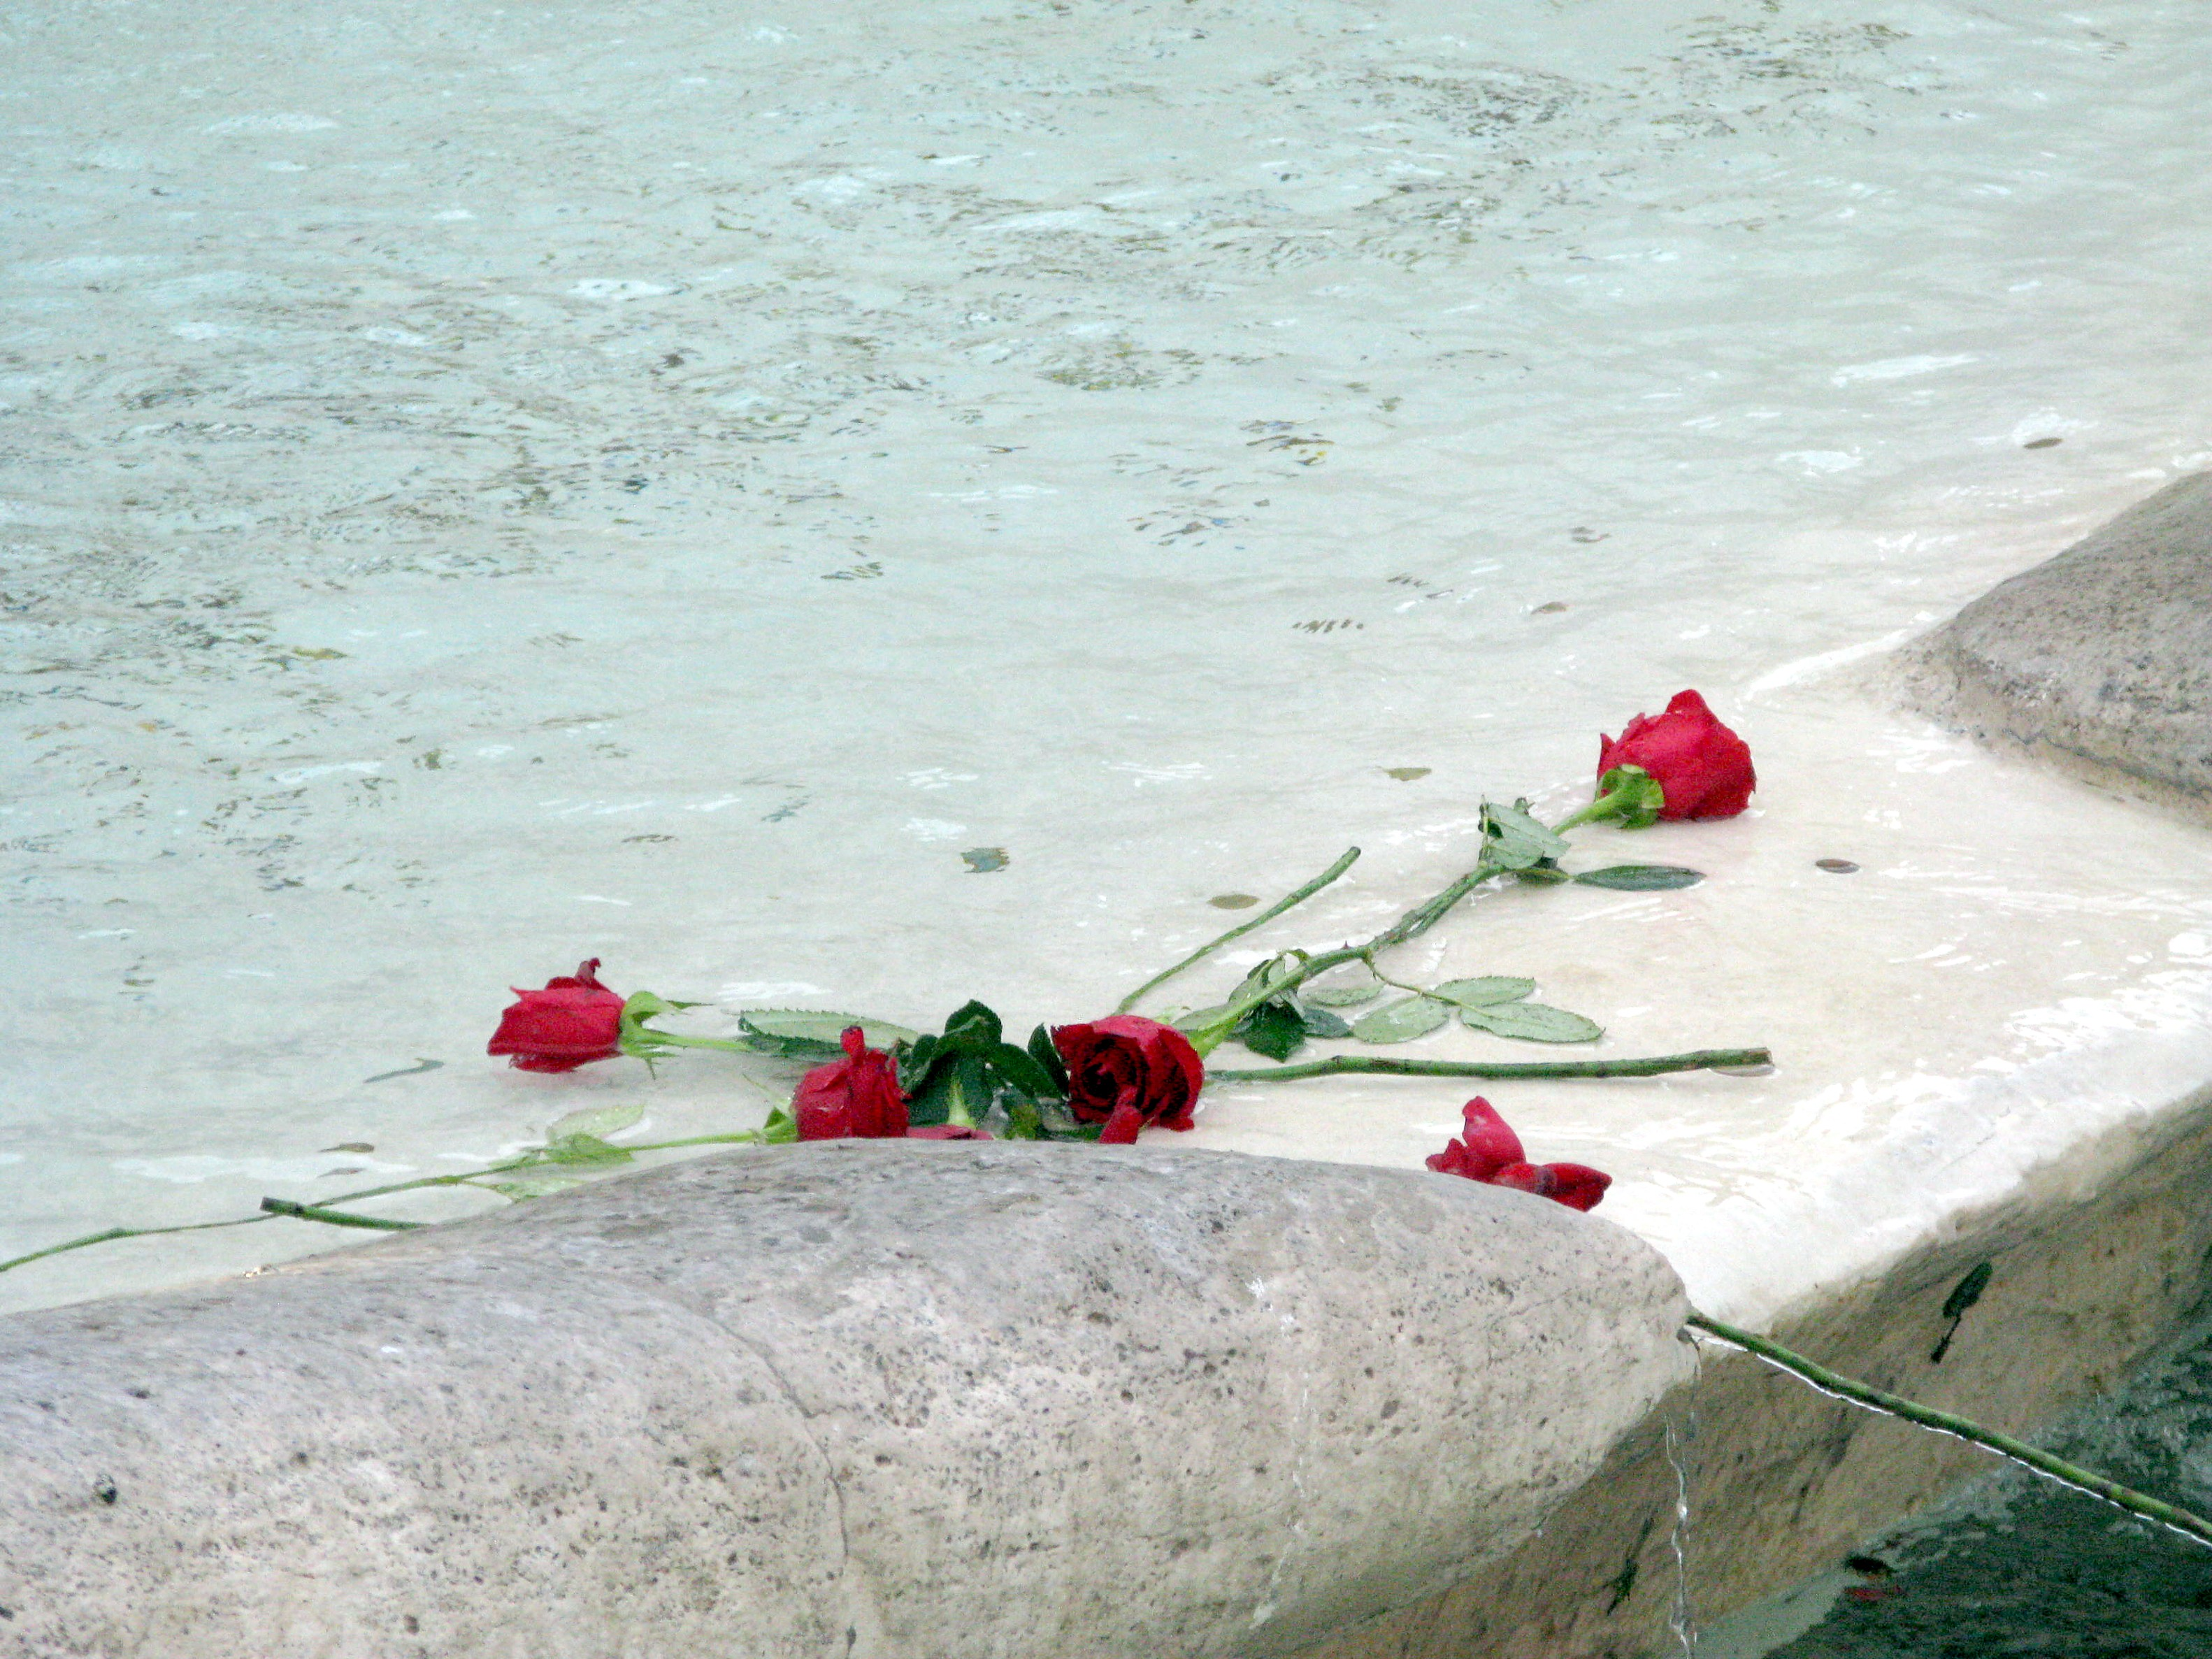 Roses thrown in fountain